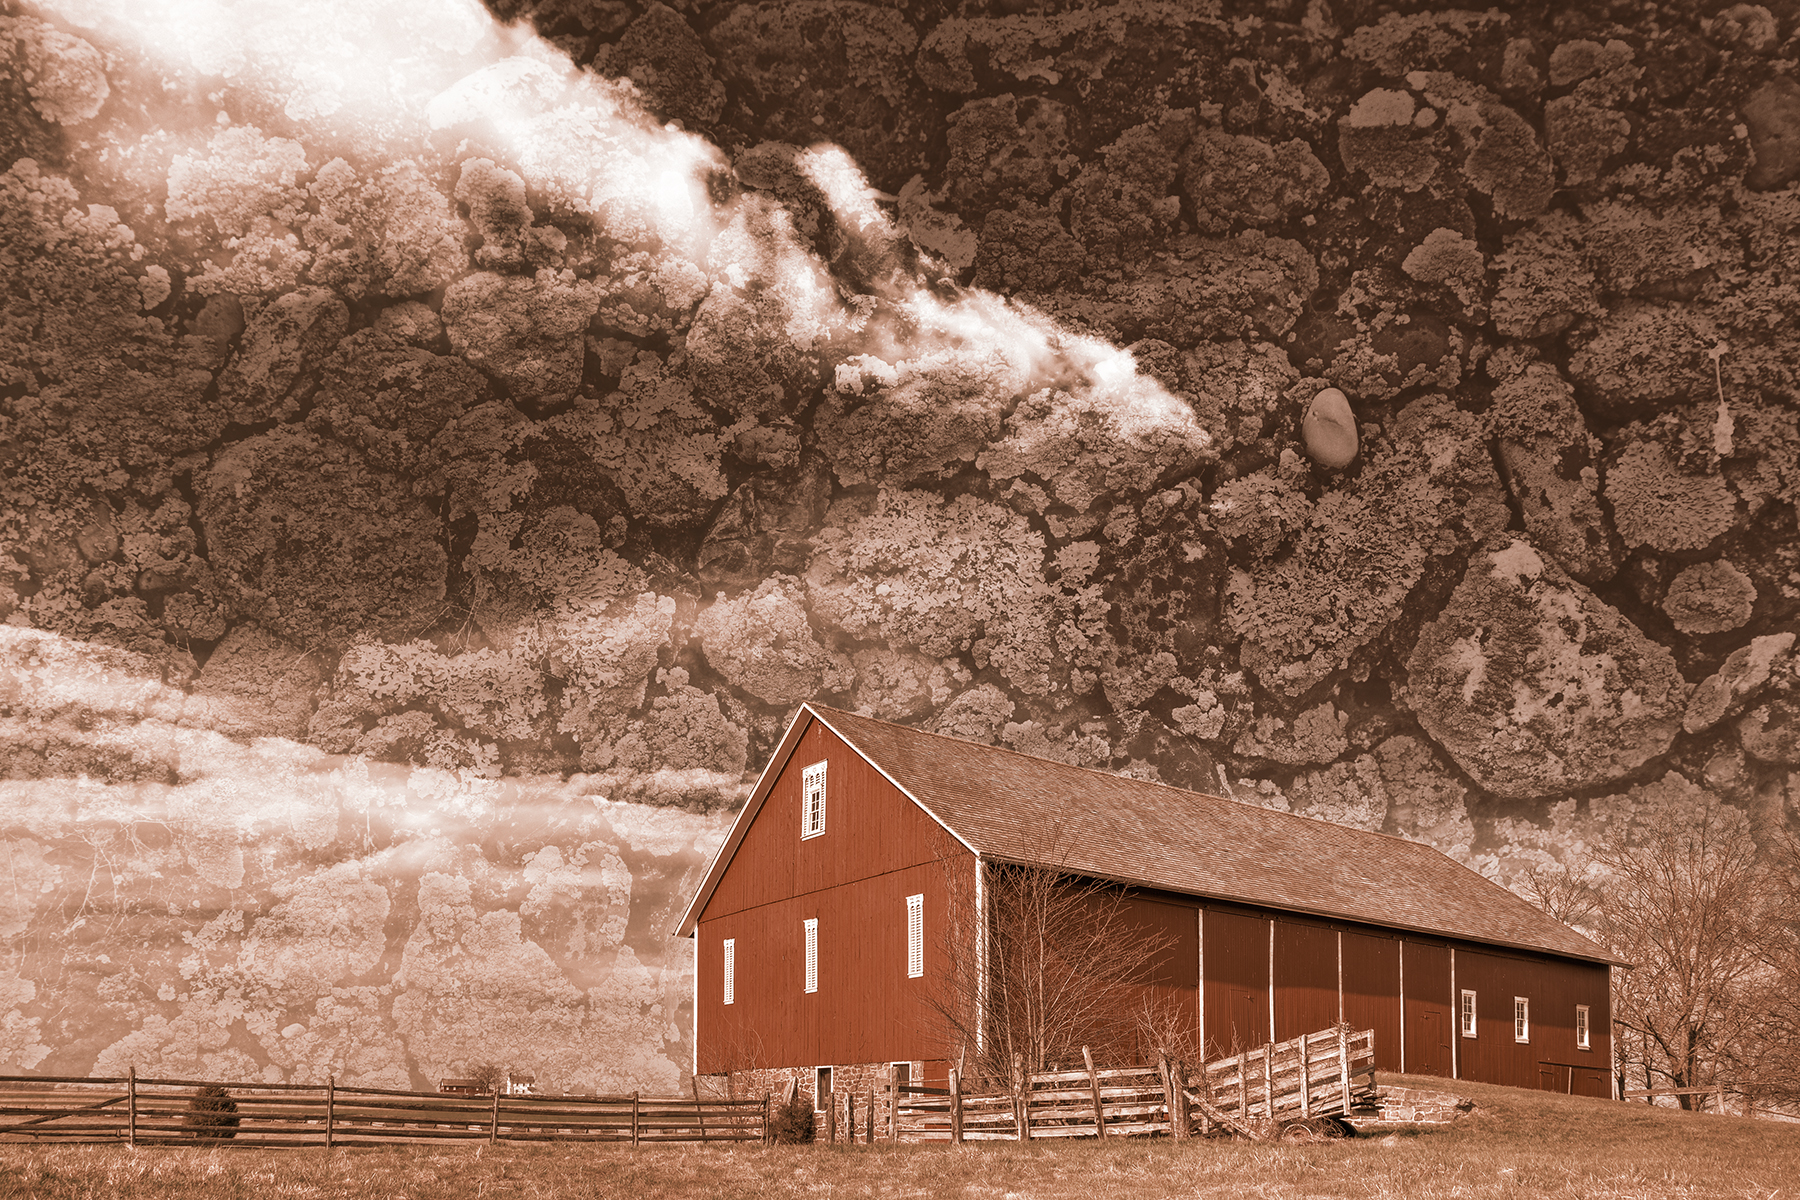 Spangler weathered sky farm - sepia nostalgia photo